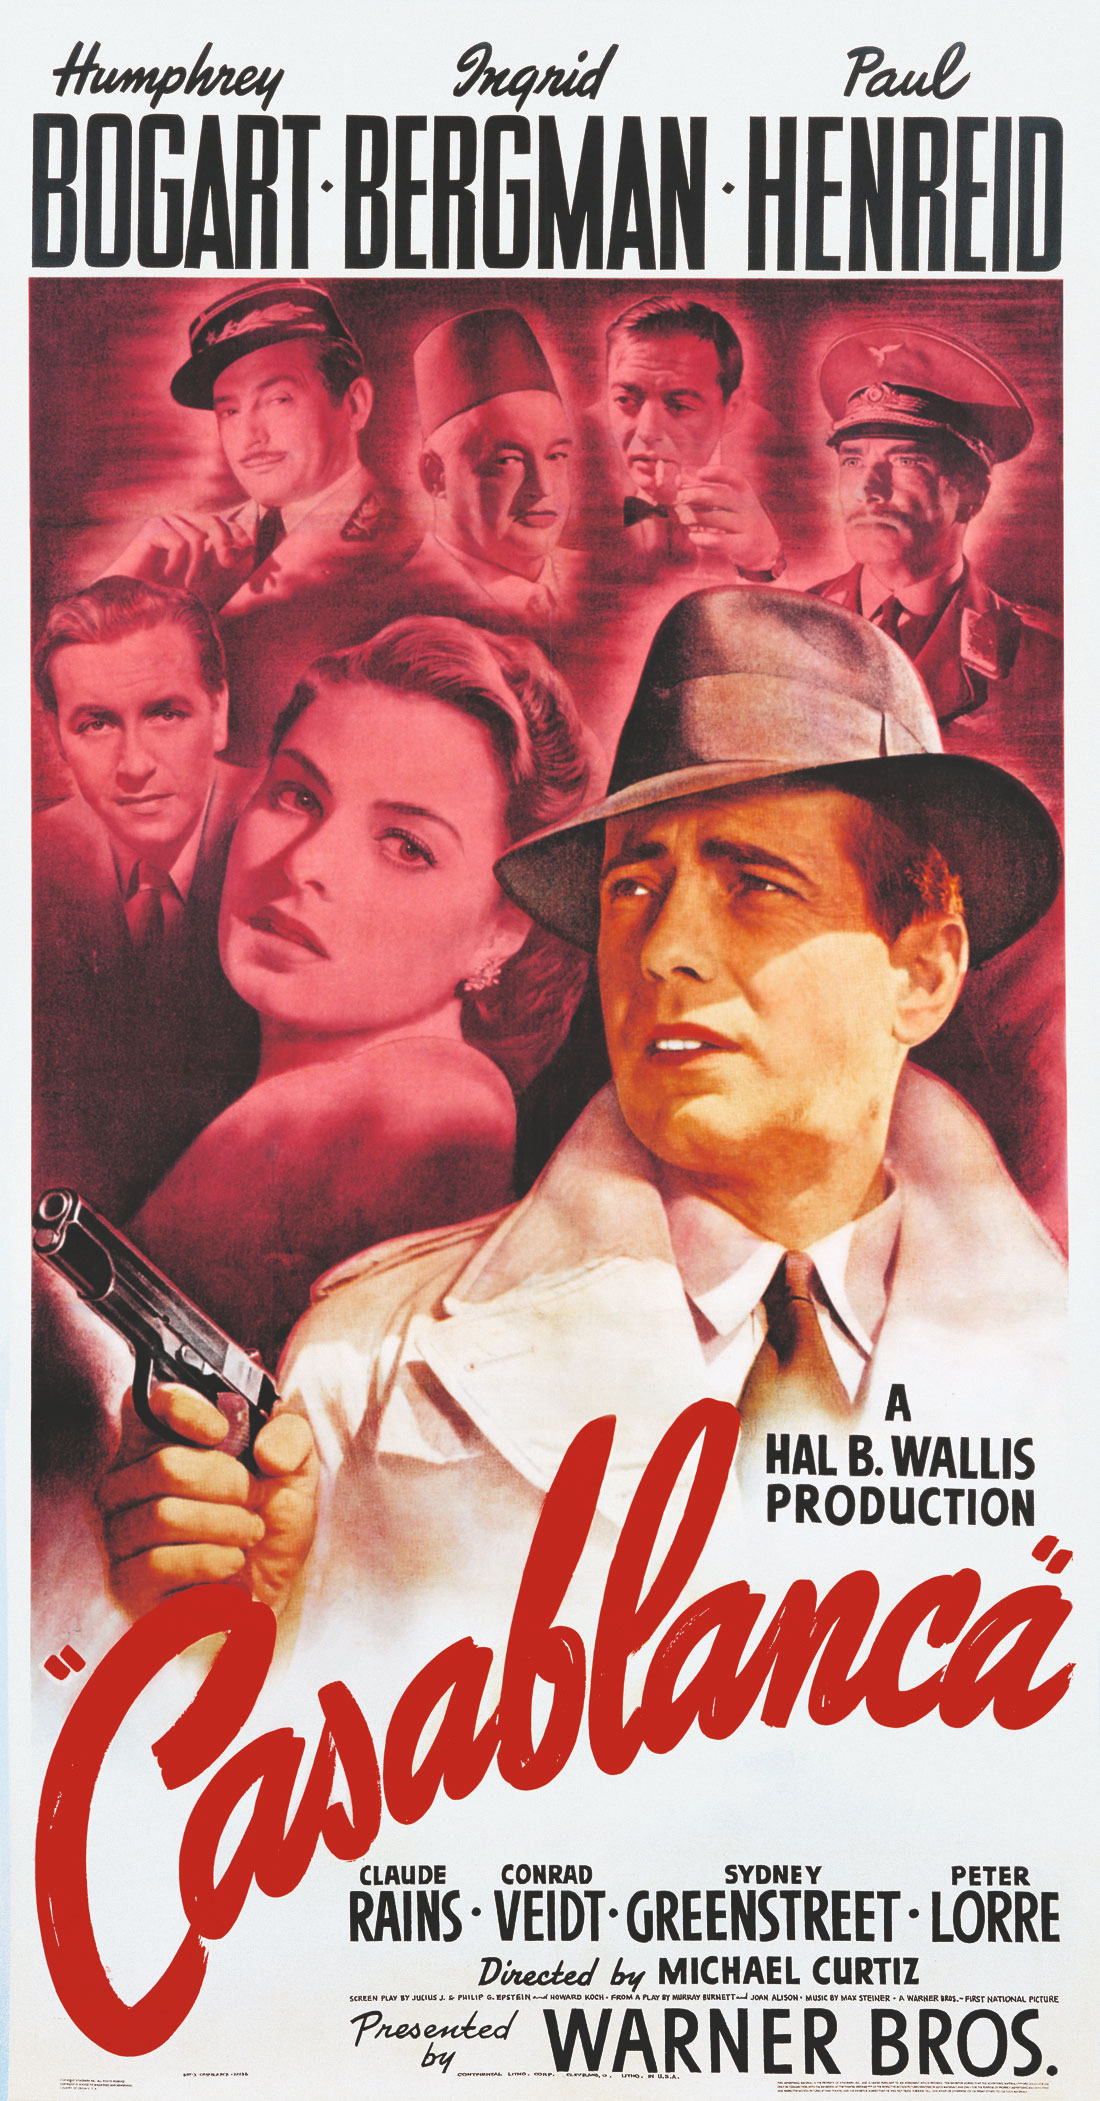 Casablanca poster Bill Gold